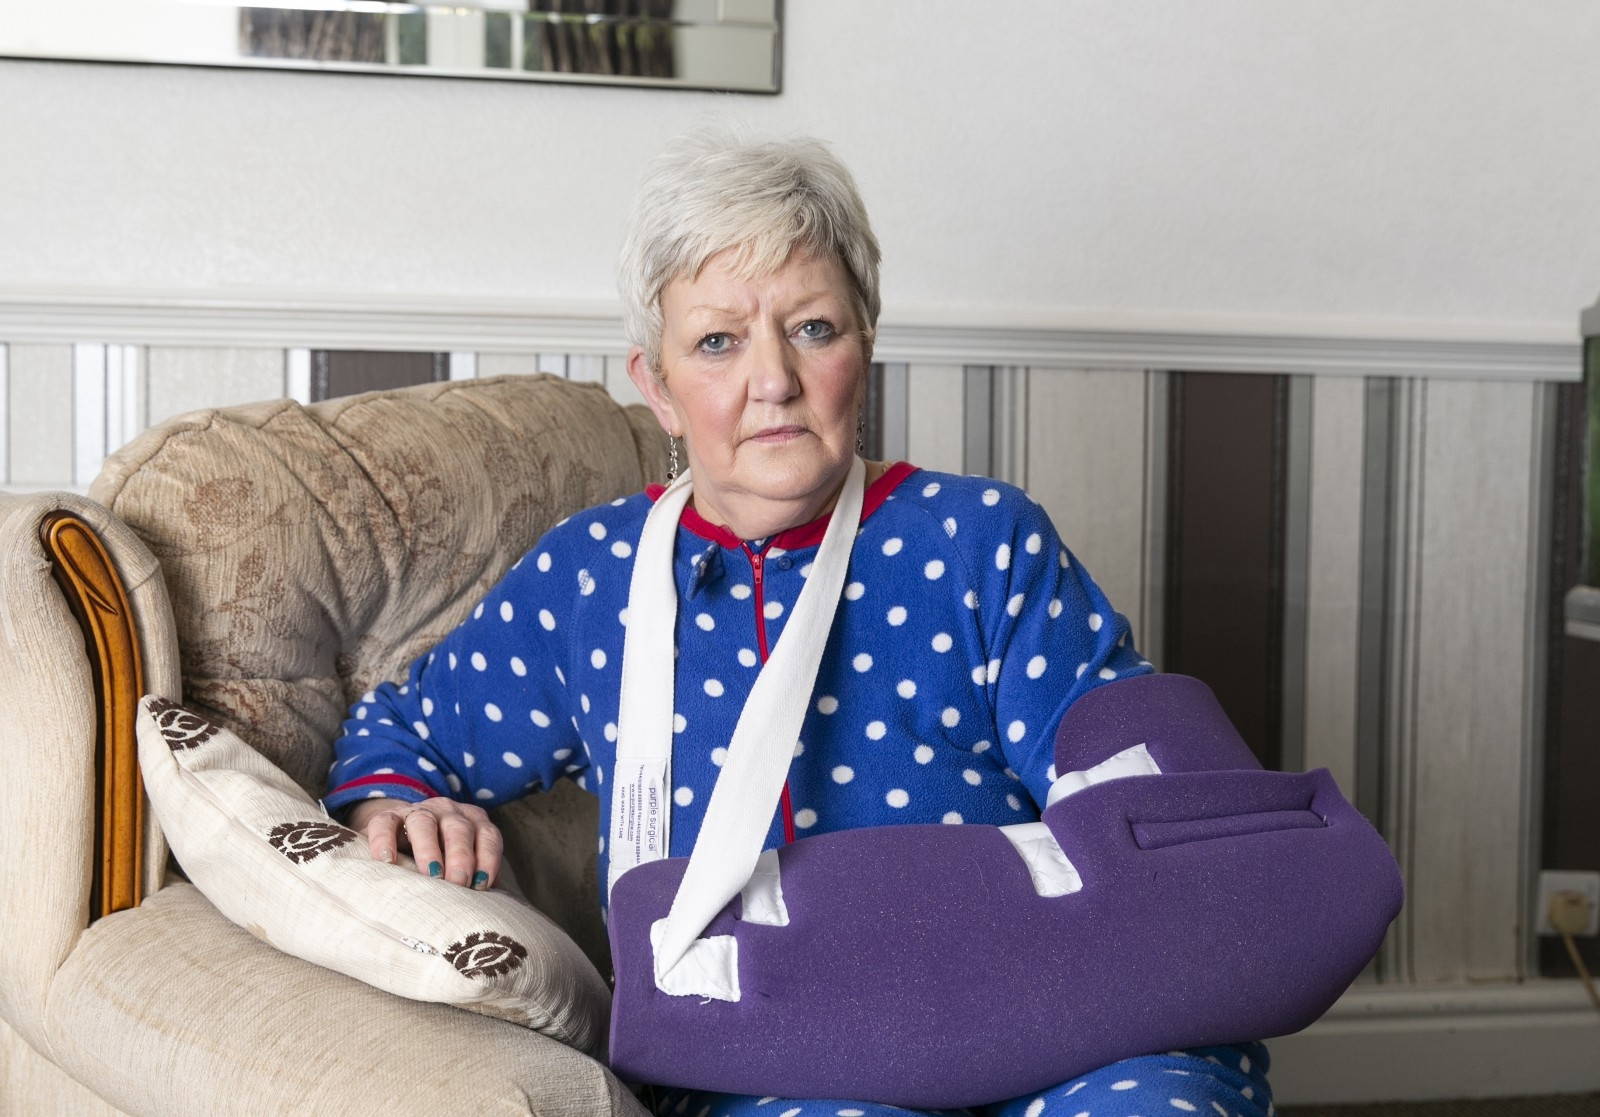 Gran Lucky To Be Alive After Being Savagely Mauled By Two Dogs